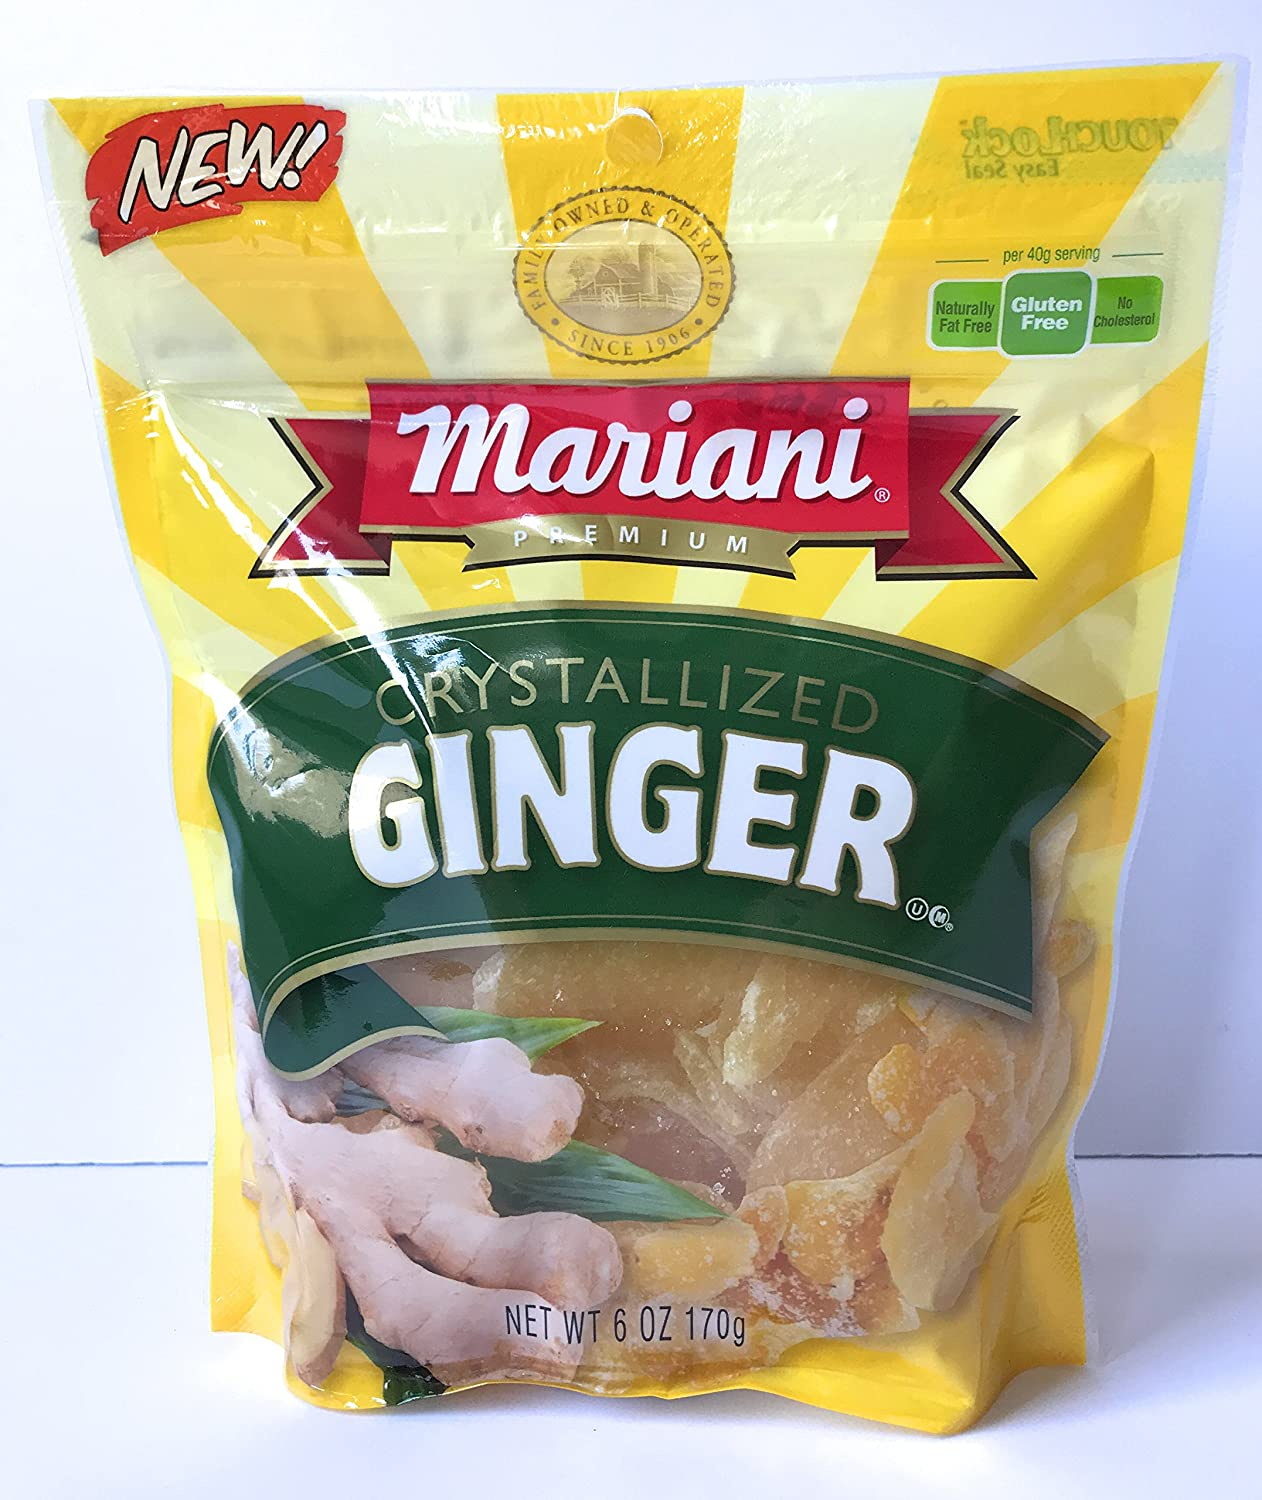 Mariani Crystallized Ginger 6 ounce Package: Amazon.com: Grocery & Gourmet Food